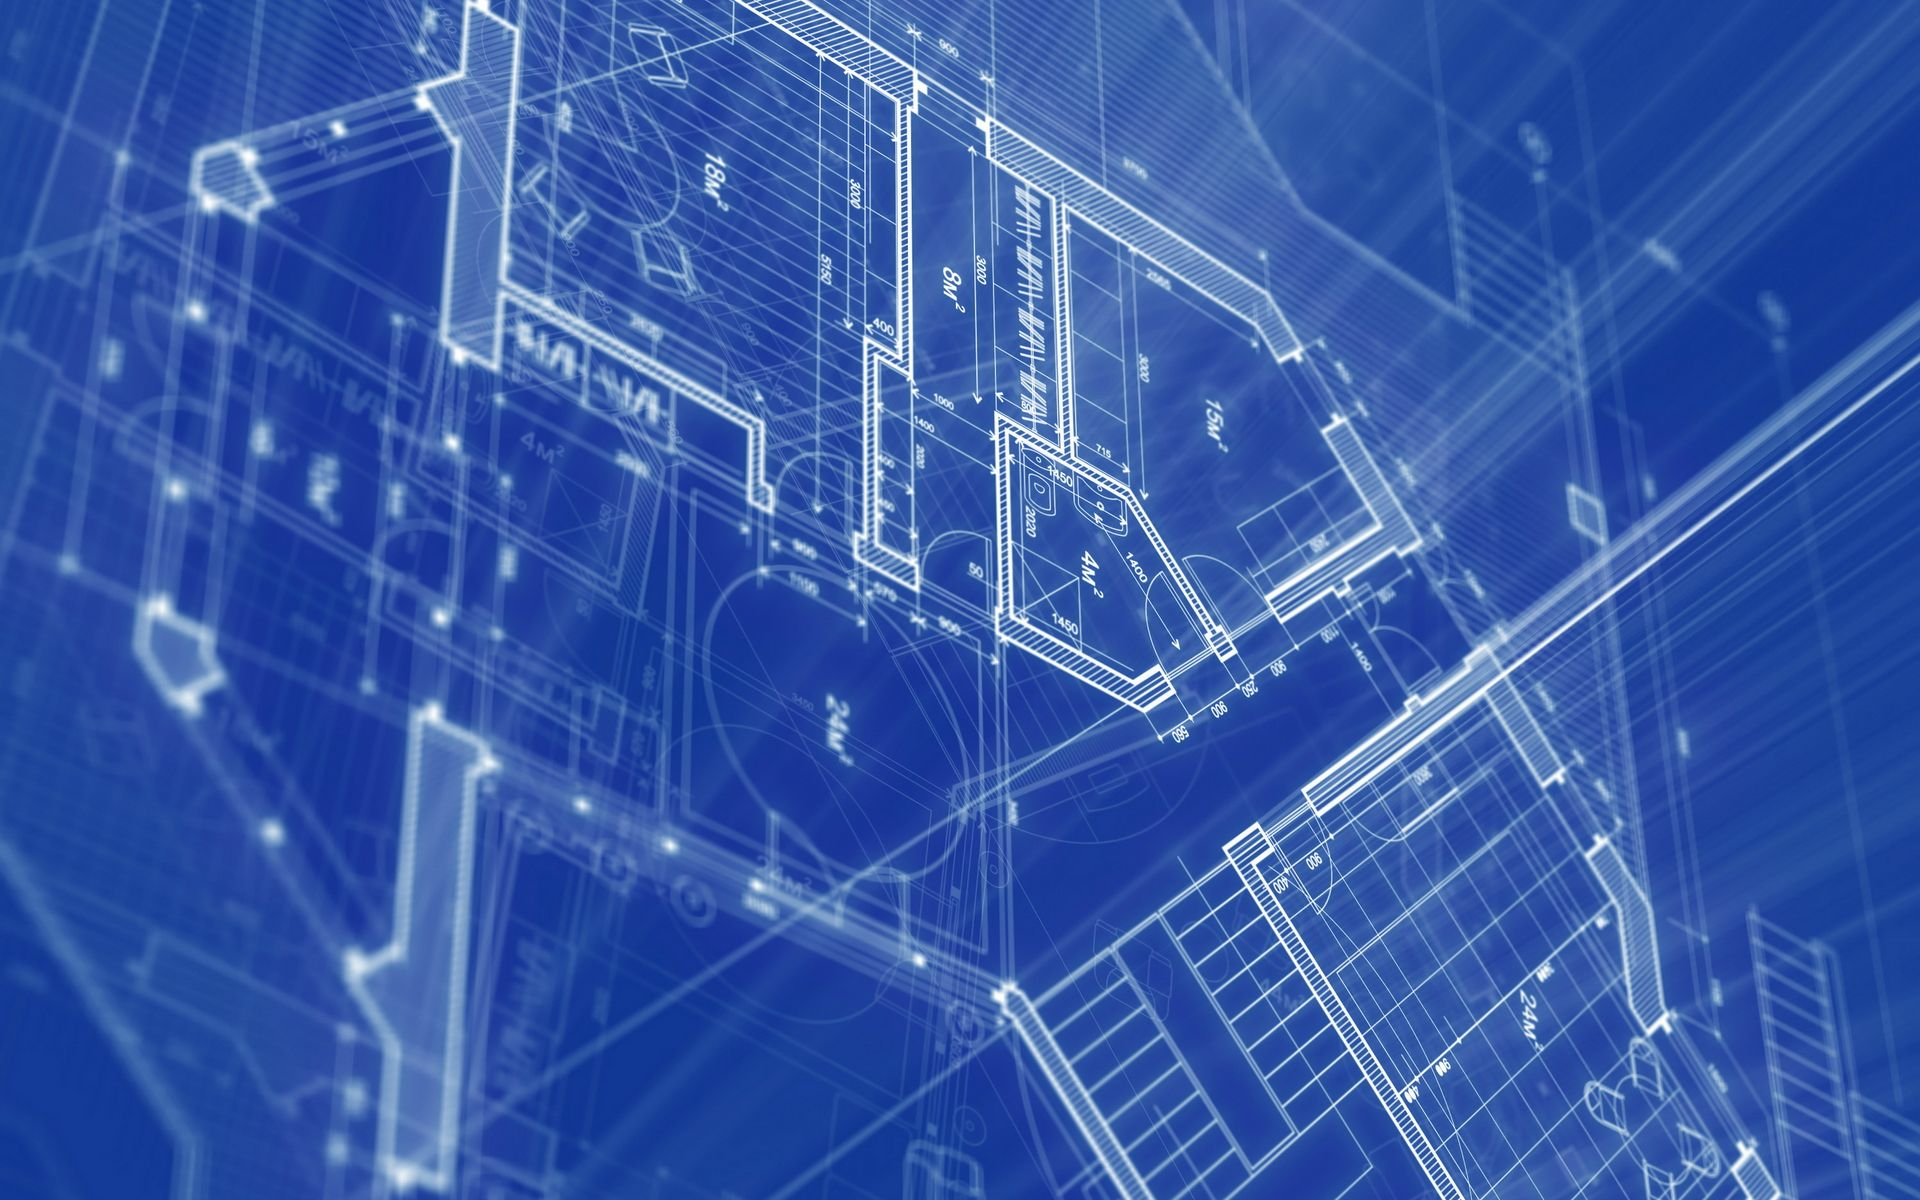 Blueprint architecture hd widescreen desktop wallpaper blueprint blueprint architecture hd widescreen desktop wallpaper malvernweather Image collections